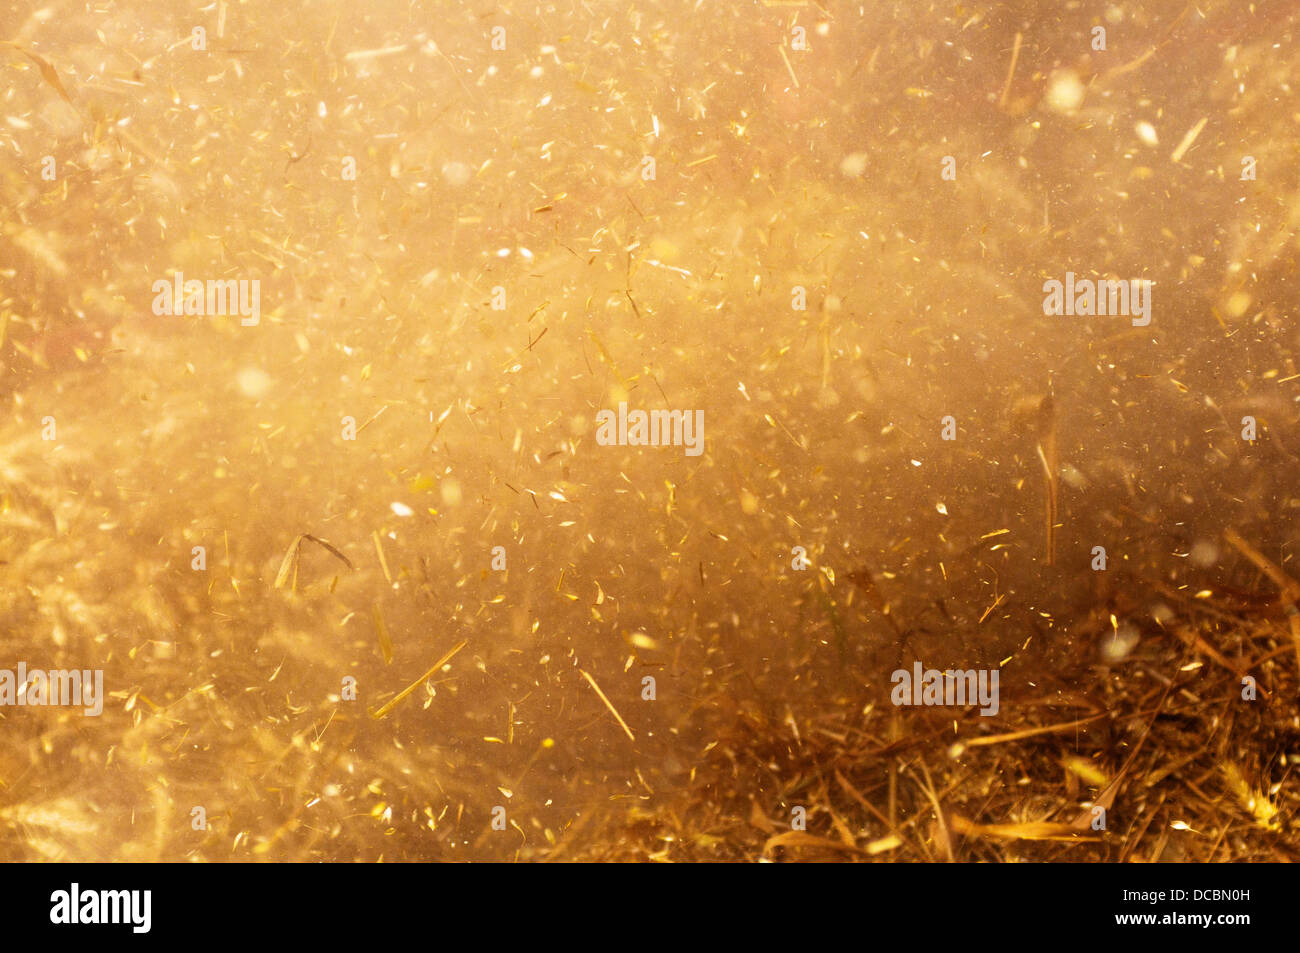 Wheat harvesting. Grains and particles of wheat exploding around during harvest. - Stock Image